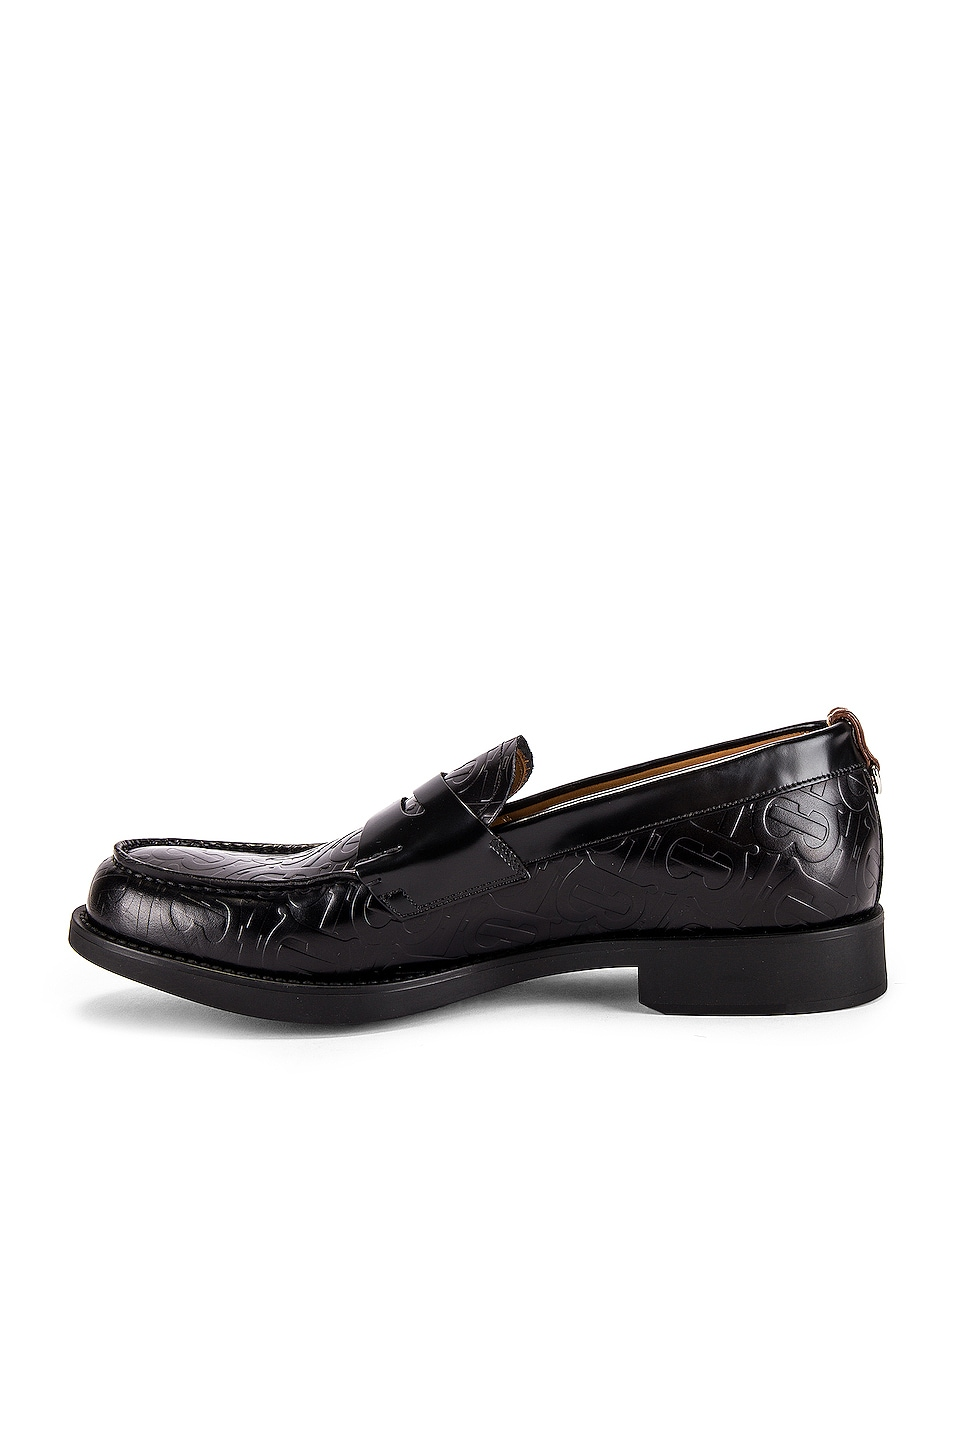 Image 5 of Burberry Emilie Loafers in Black